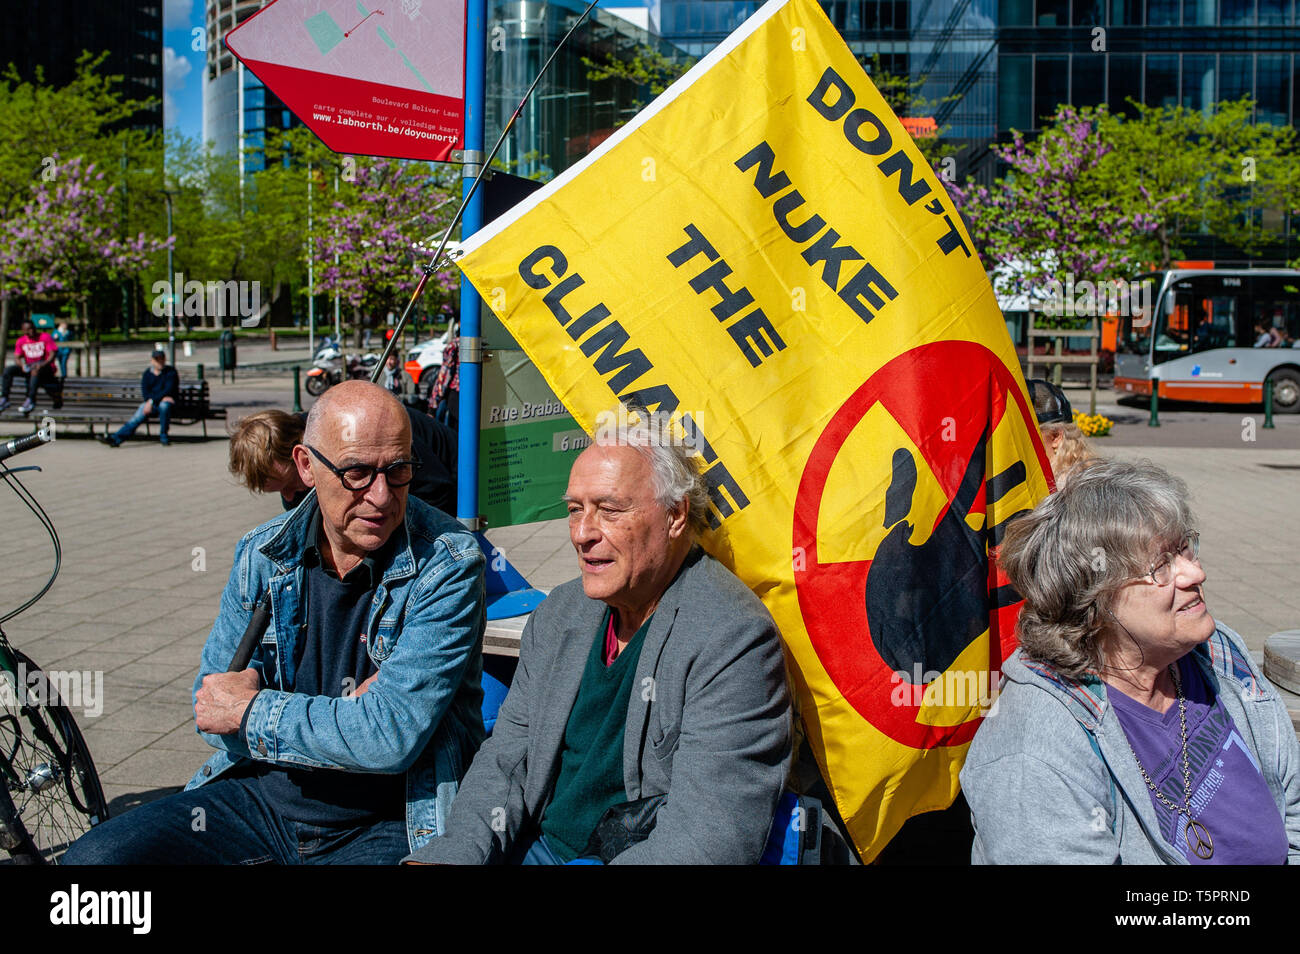 """April 26, 2019 - Brussels, North Brabant, Belgium - Two activists are seen seating while holding a big anti nuclear flag during the protest..On the day that commemorates the 33rd anniversary of the Chernobyl nuclear disaster, a protest was organized by the """"Fin du nucléaire"""" and Réveil Anti-Nucléaire"""" associations, as well as director Bouli Lanners. They want the five most dangerous Belgian reactors to be shut down. (Credit Image: © Ana Fernandez/SOPA Images via ZUMA Wire) - Stock Image"""